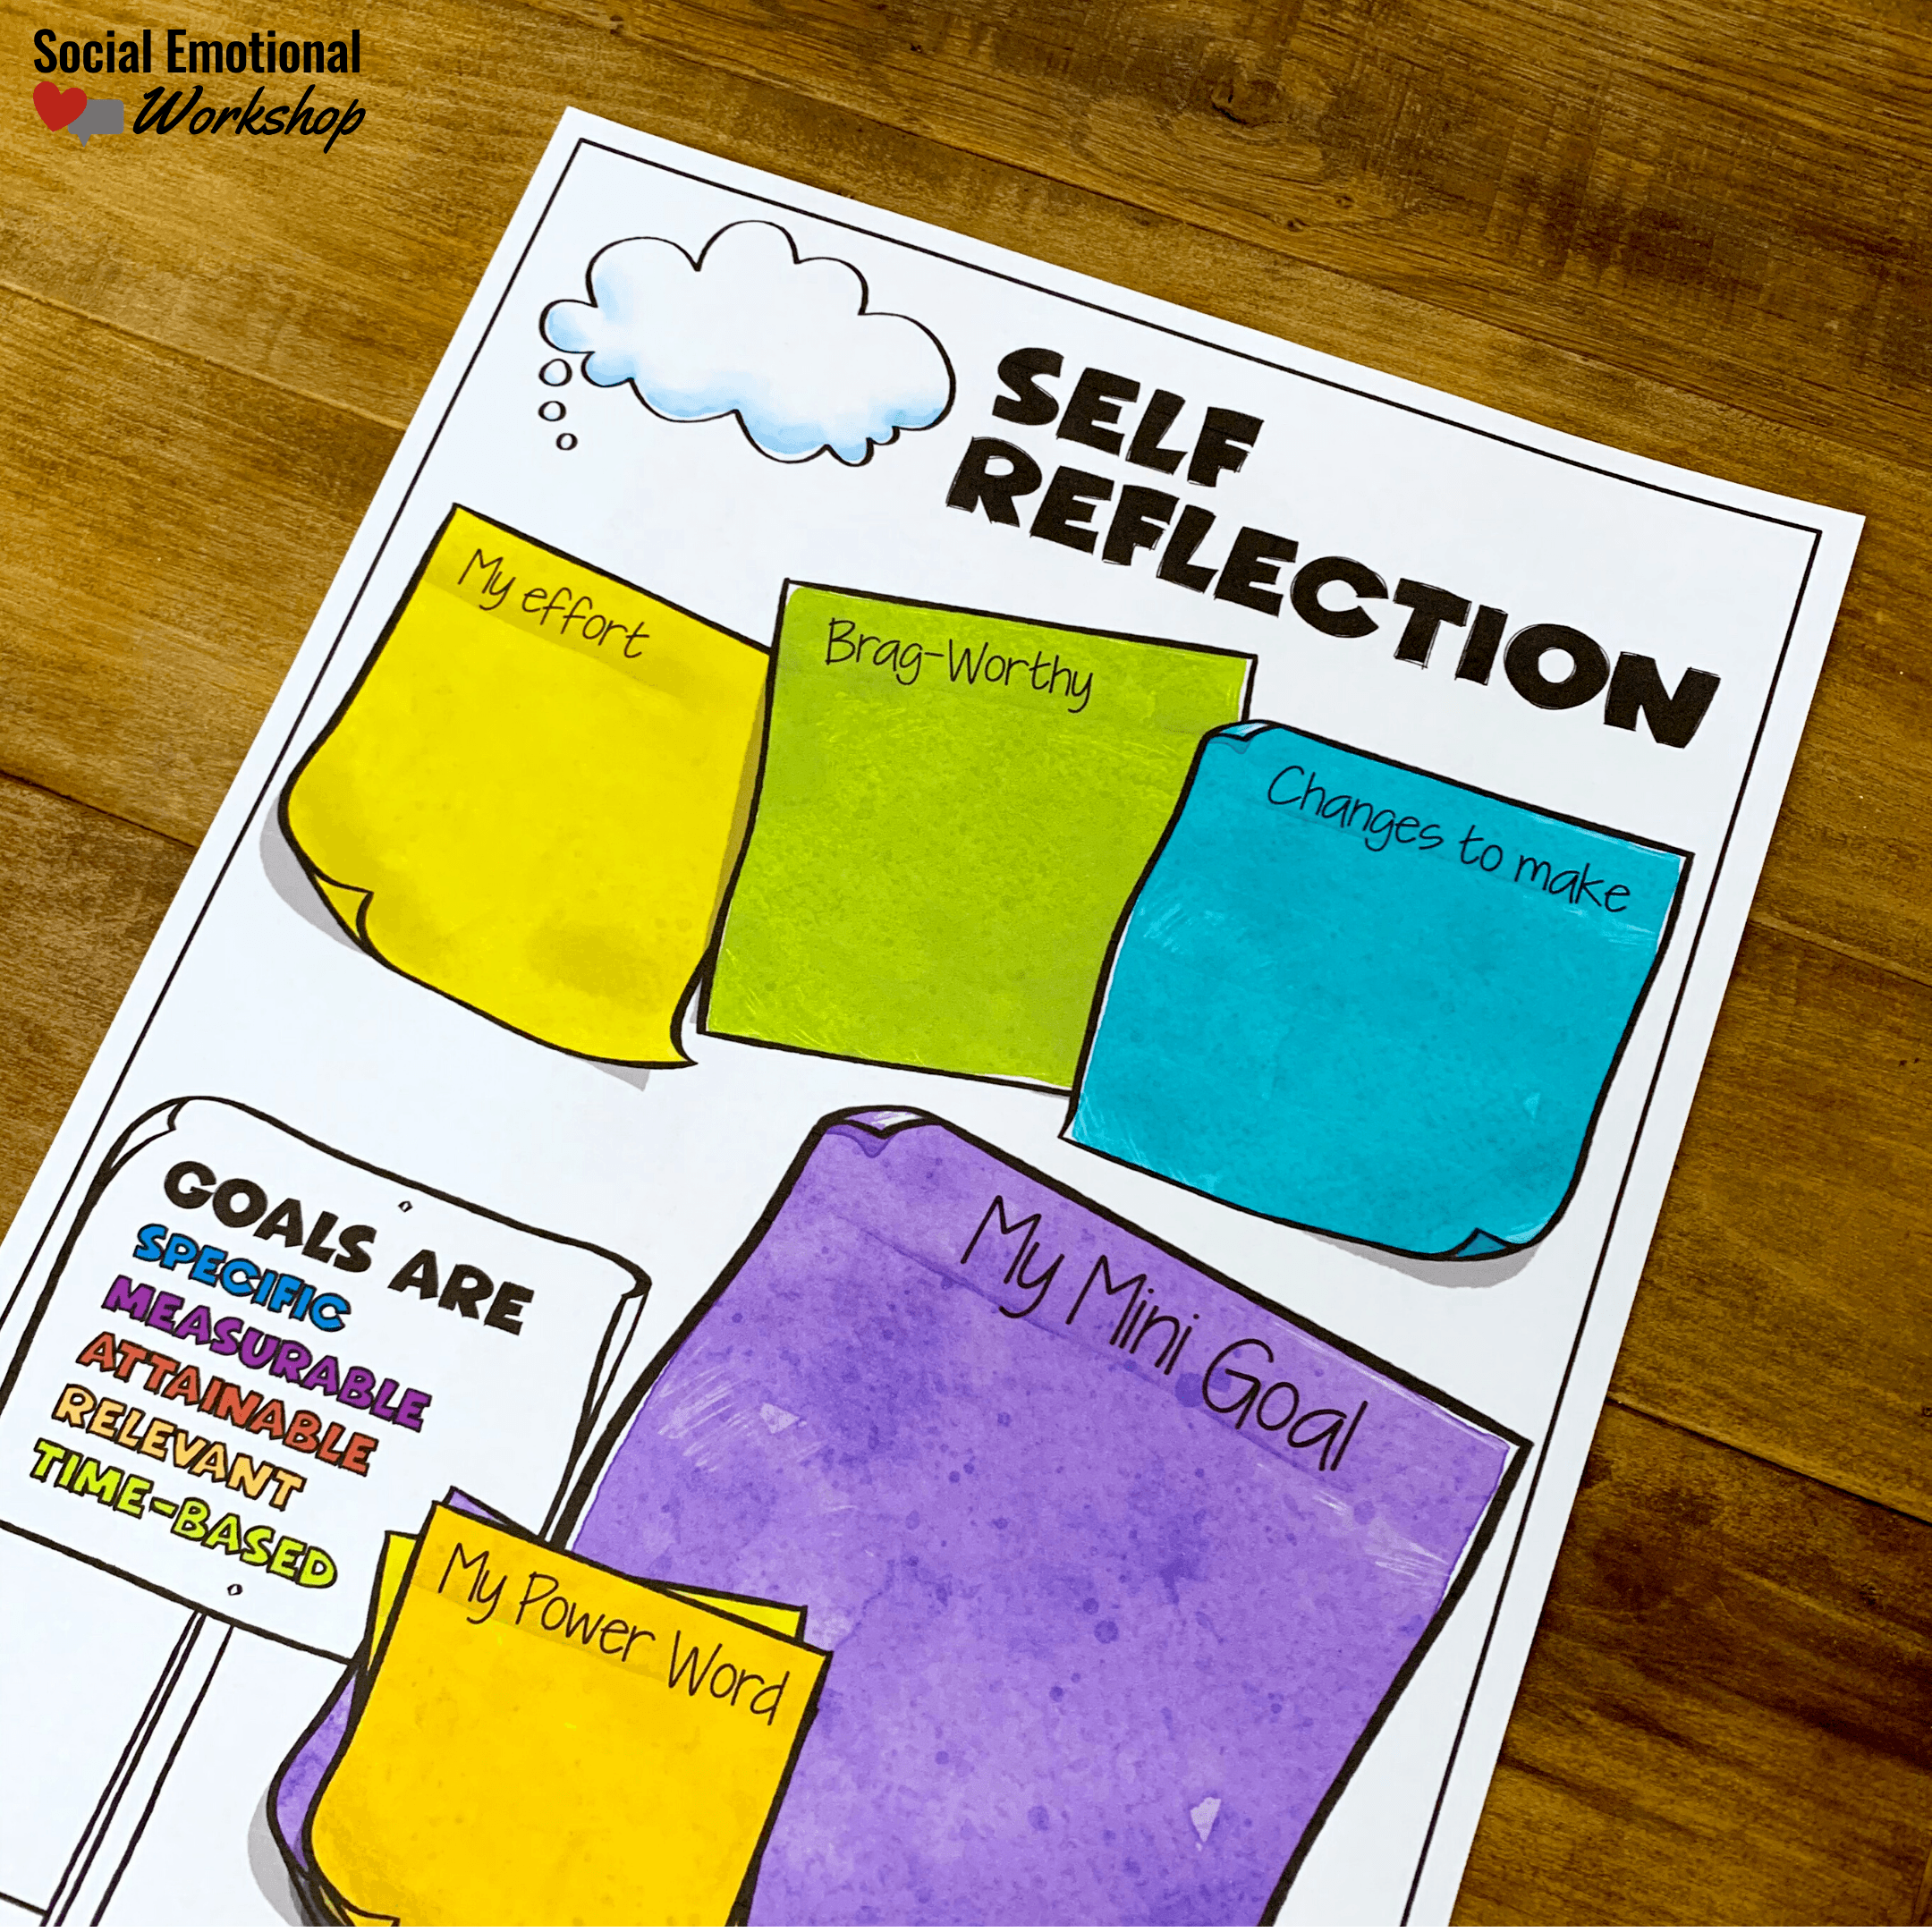 Goal Setting: Self Reflection